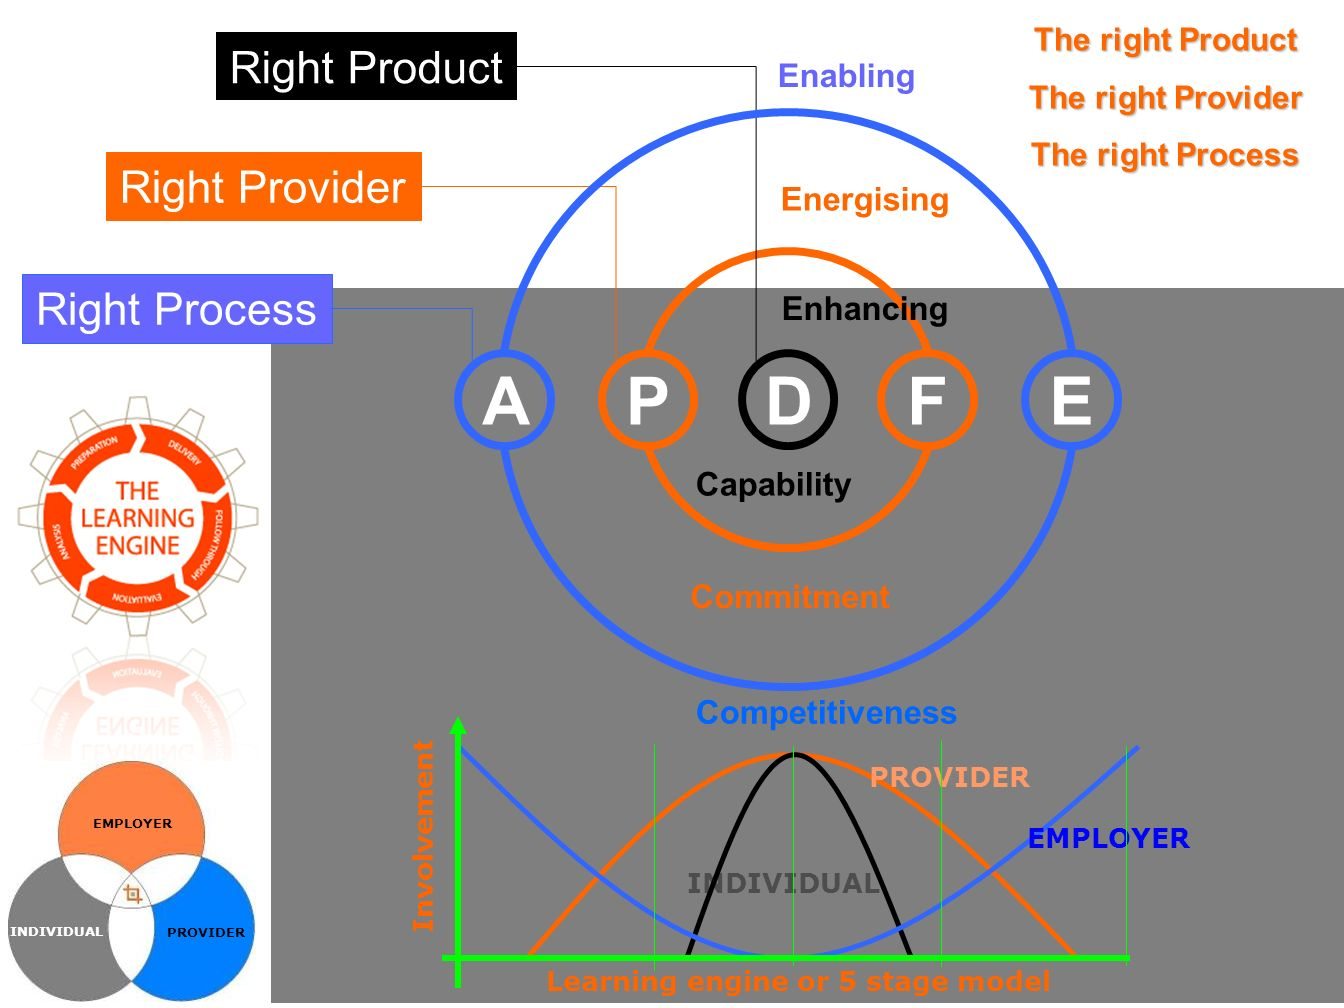 Energising Commitment PF Right Provider Enhancing Capability D Right Product The right Product The right Provider The right Process Enabling Right Process AE Competitiveness EMPLOYER INDIVIDUAL PROVIDER INDIVIDUAL EMPLOYER Involvement Learning engine or 5 stage model